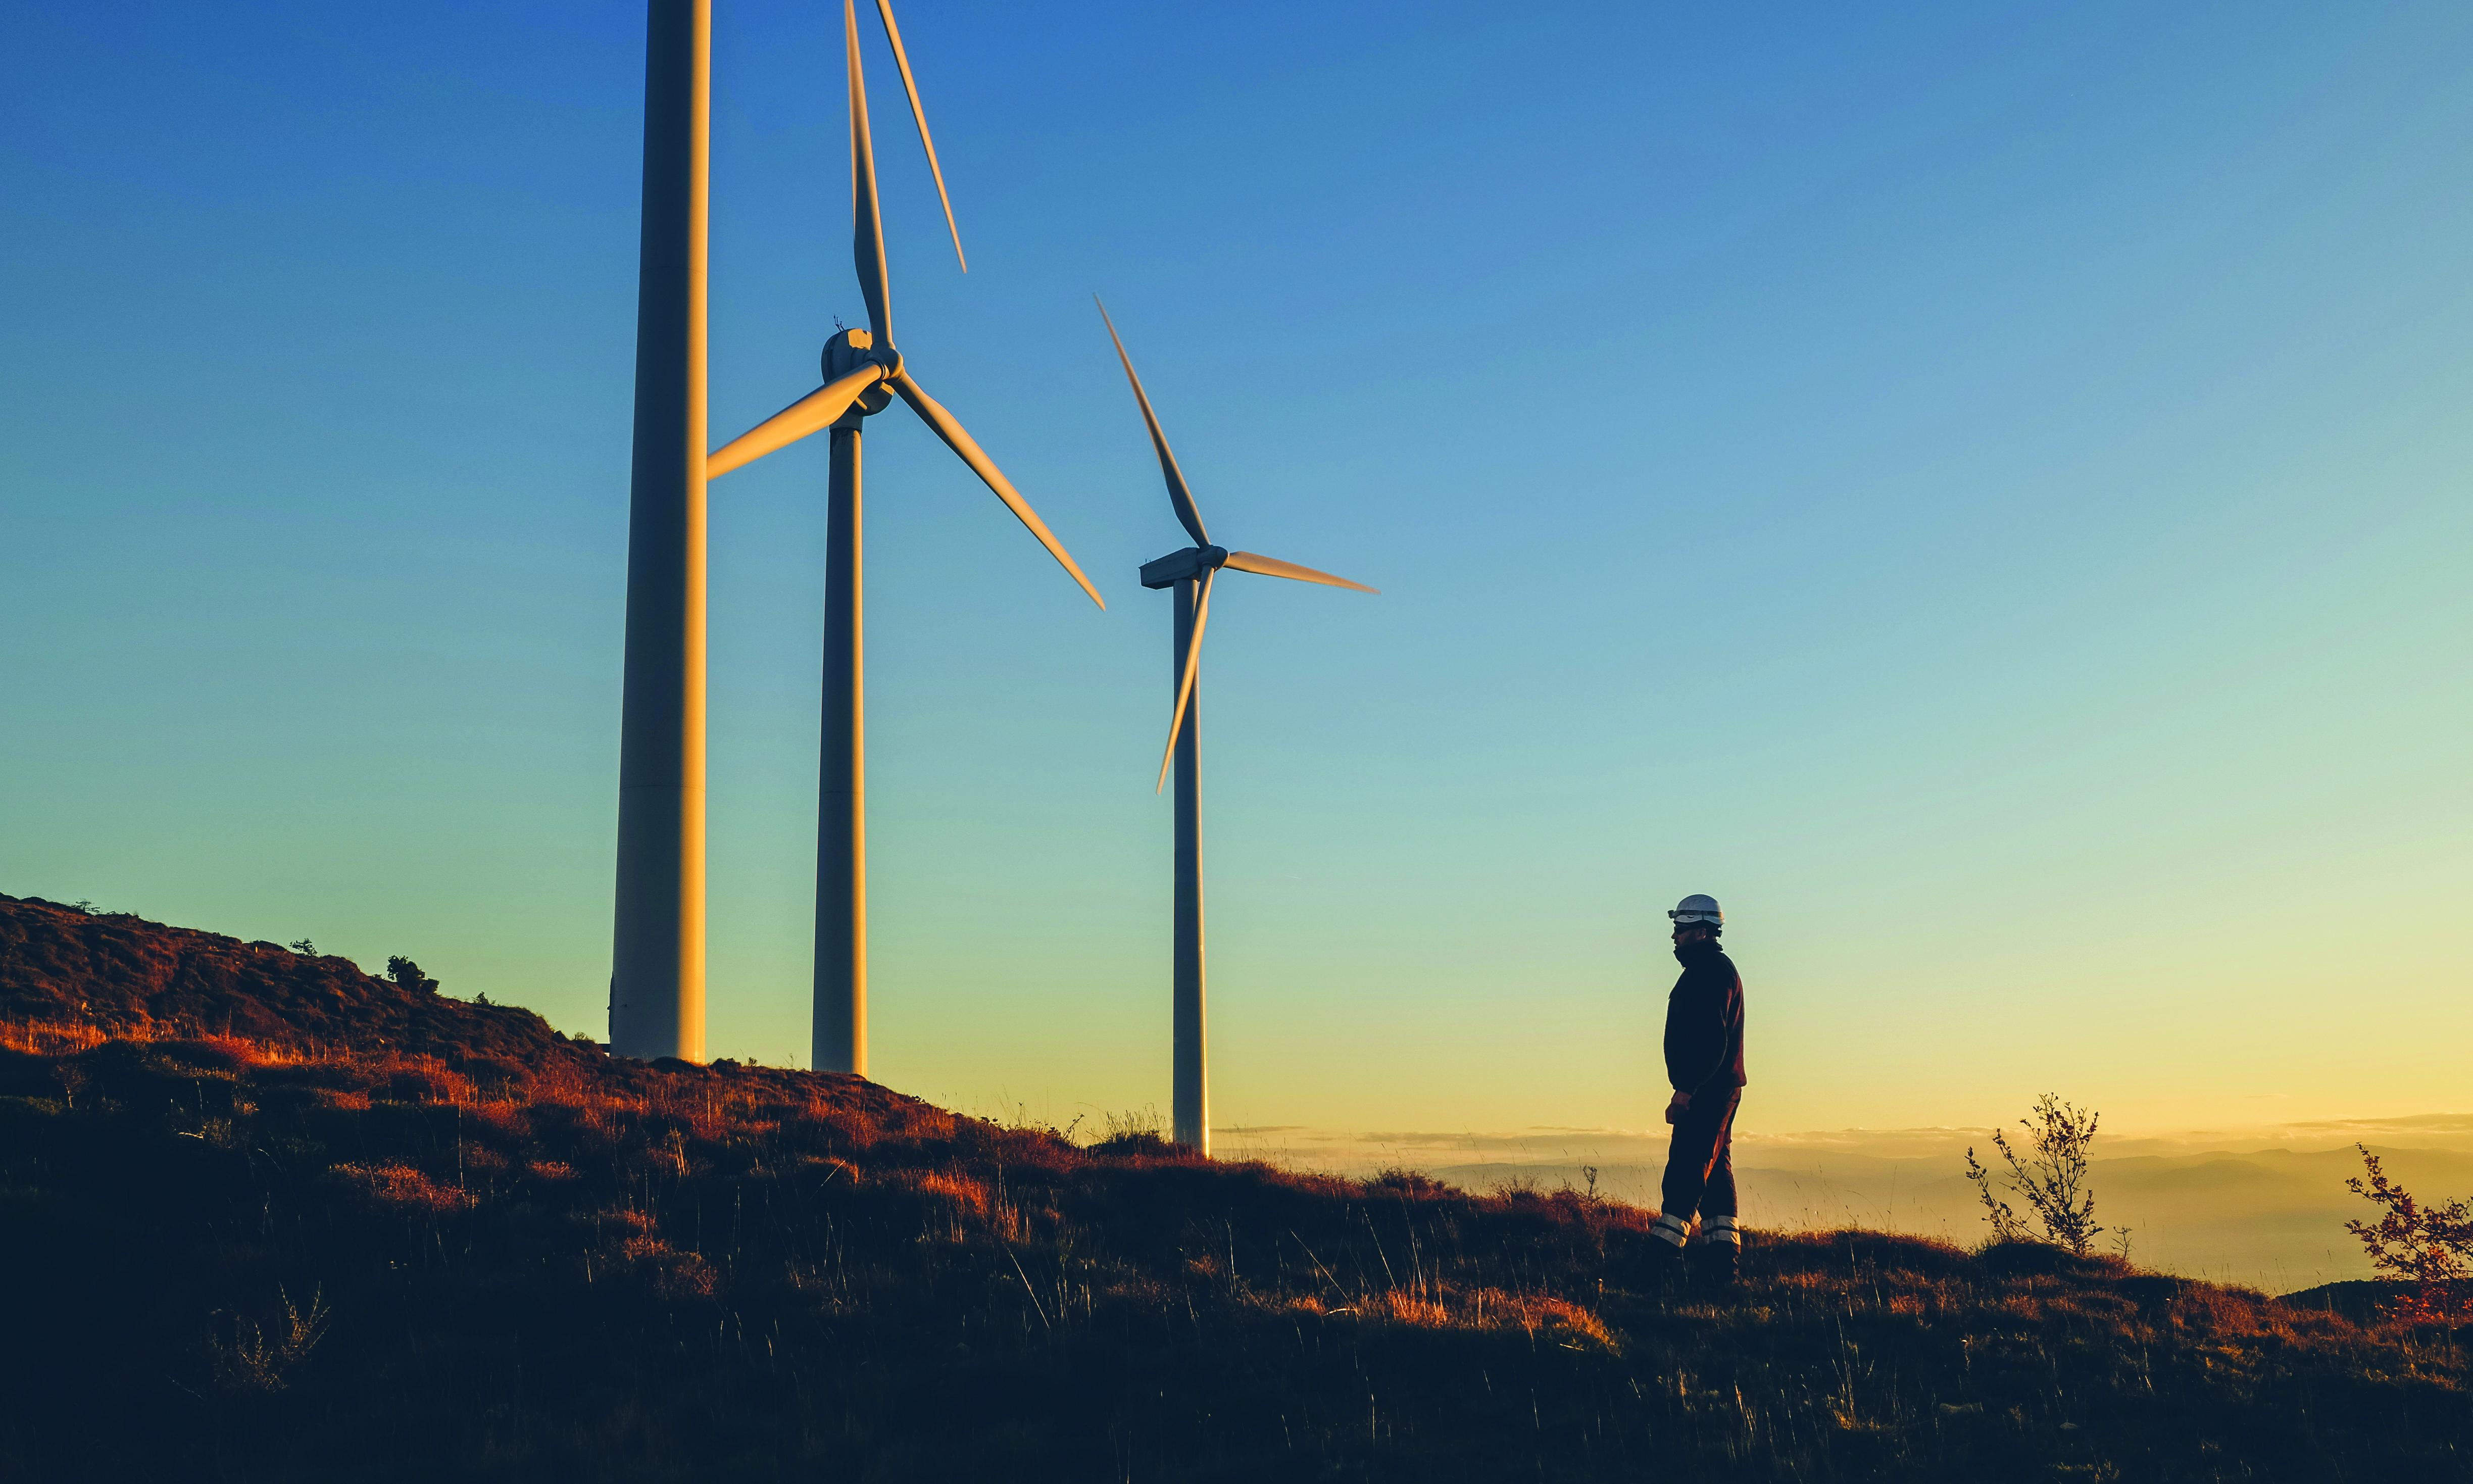 A worker is facing wind turbines